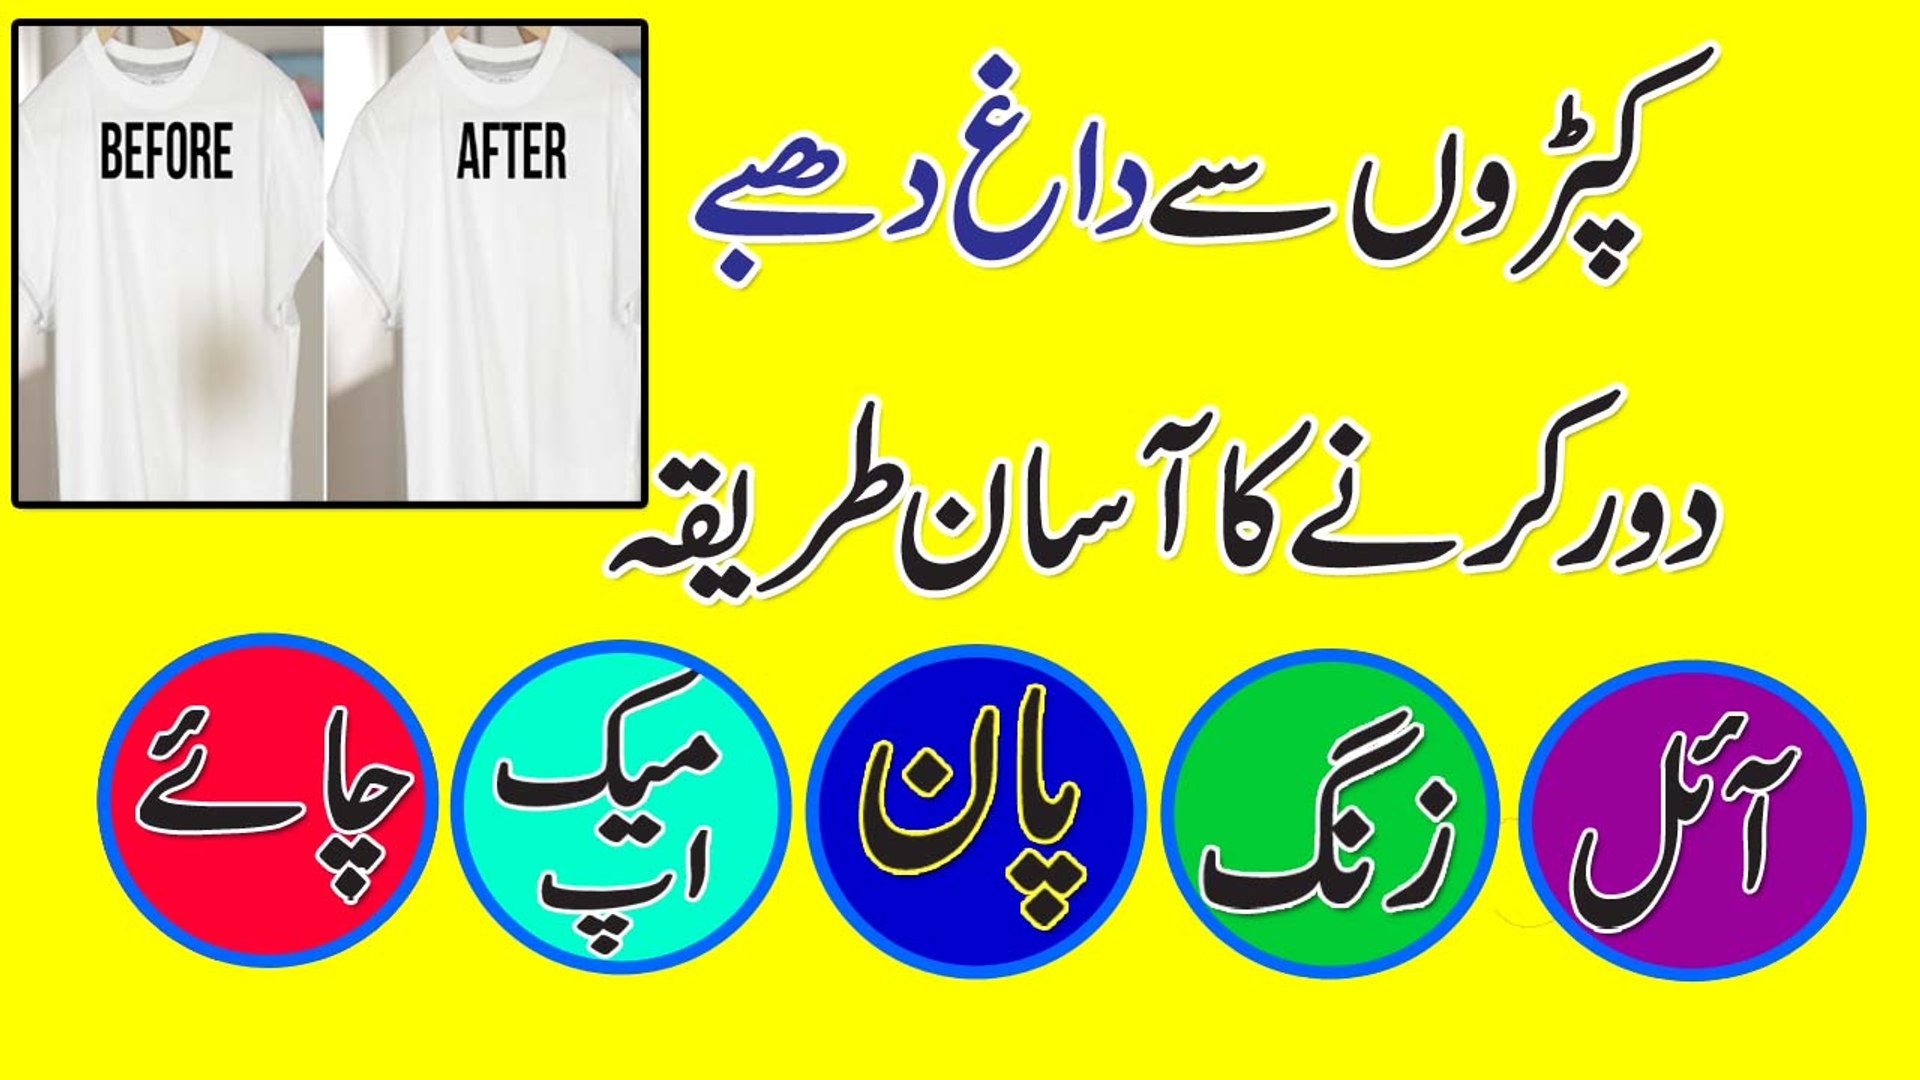 How To Clean Stain From Clothes In Urdu Remove Grease or Oil Stains Kapro Se Dhag Dhabay Dur Karna